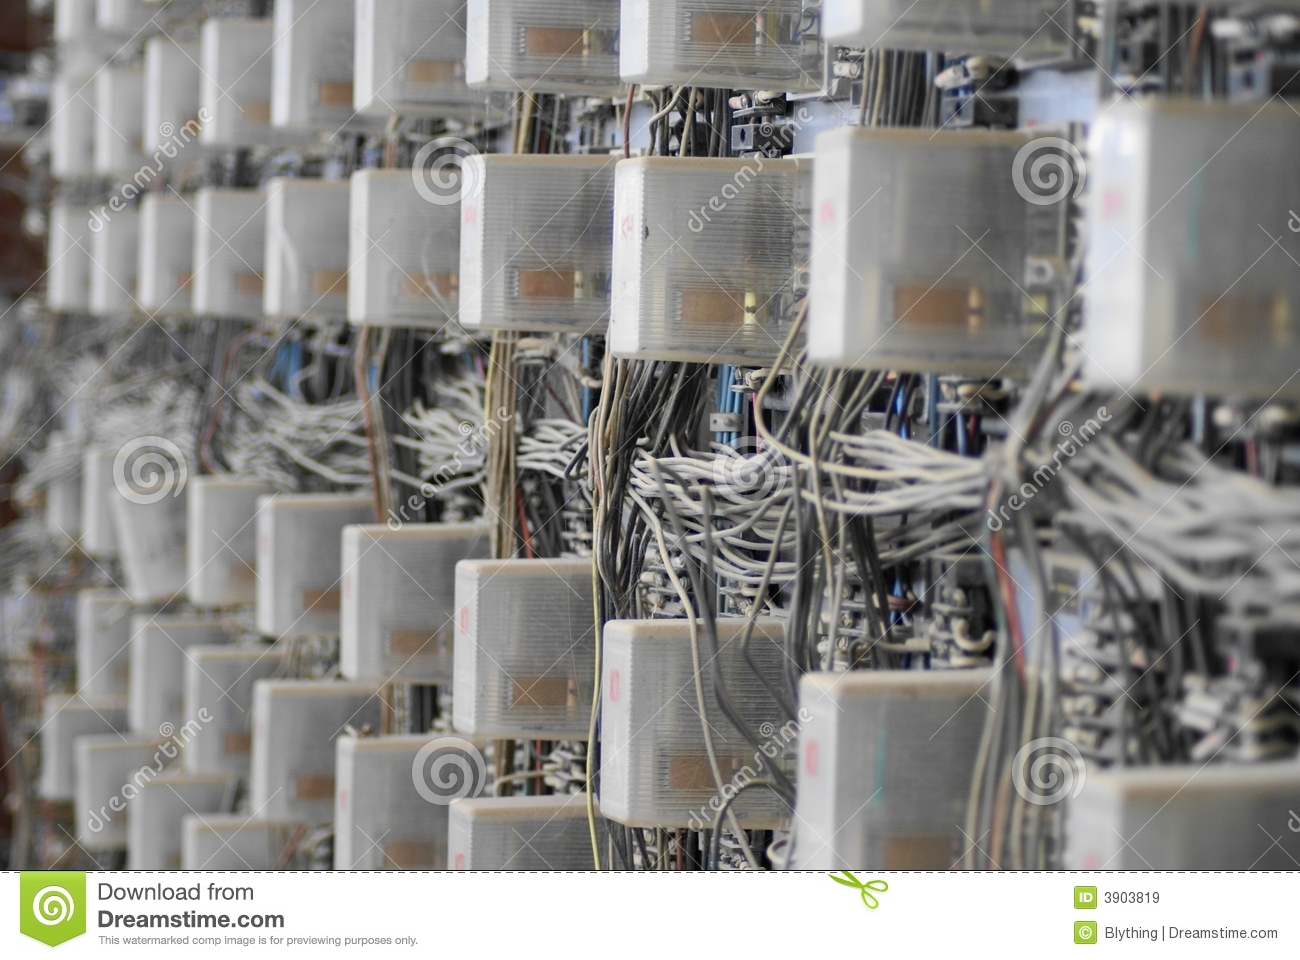 Electrical circuitry